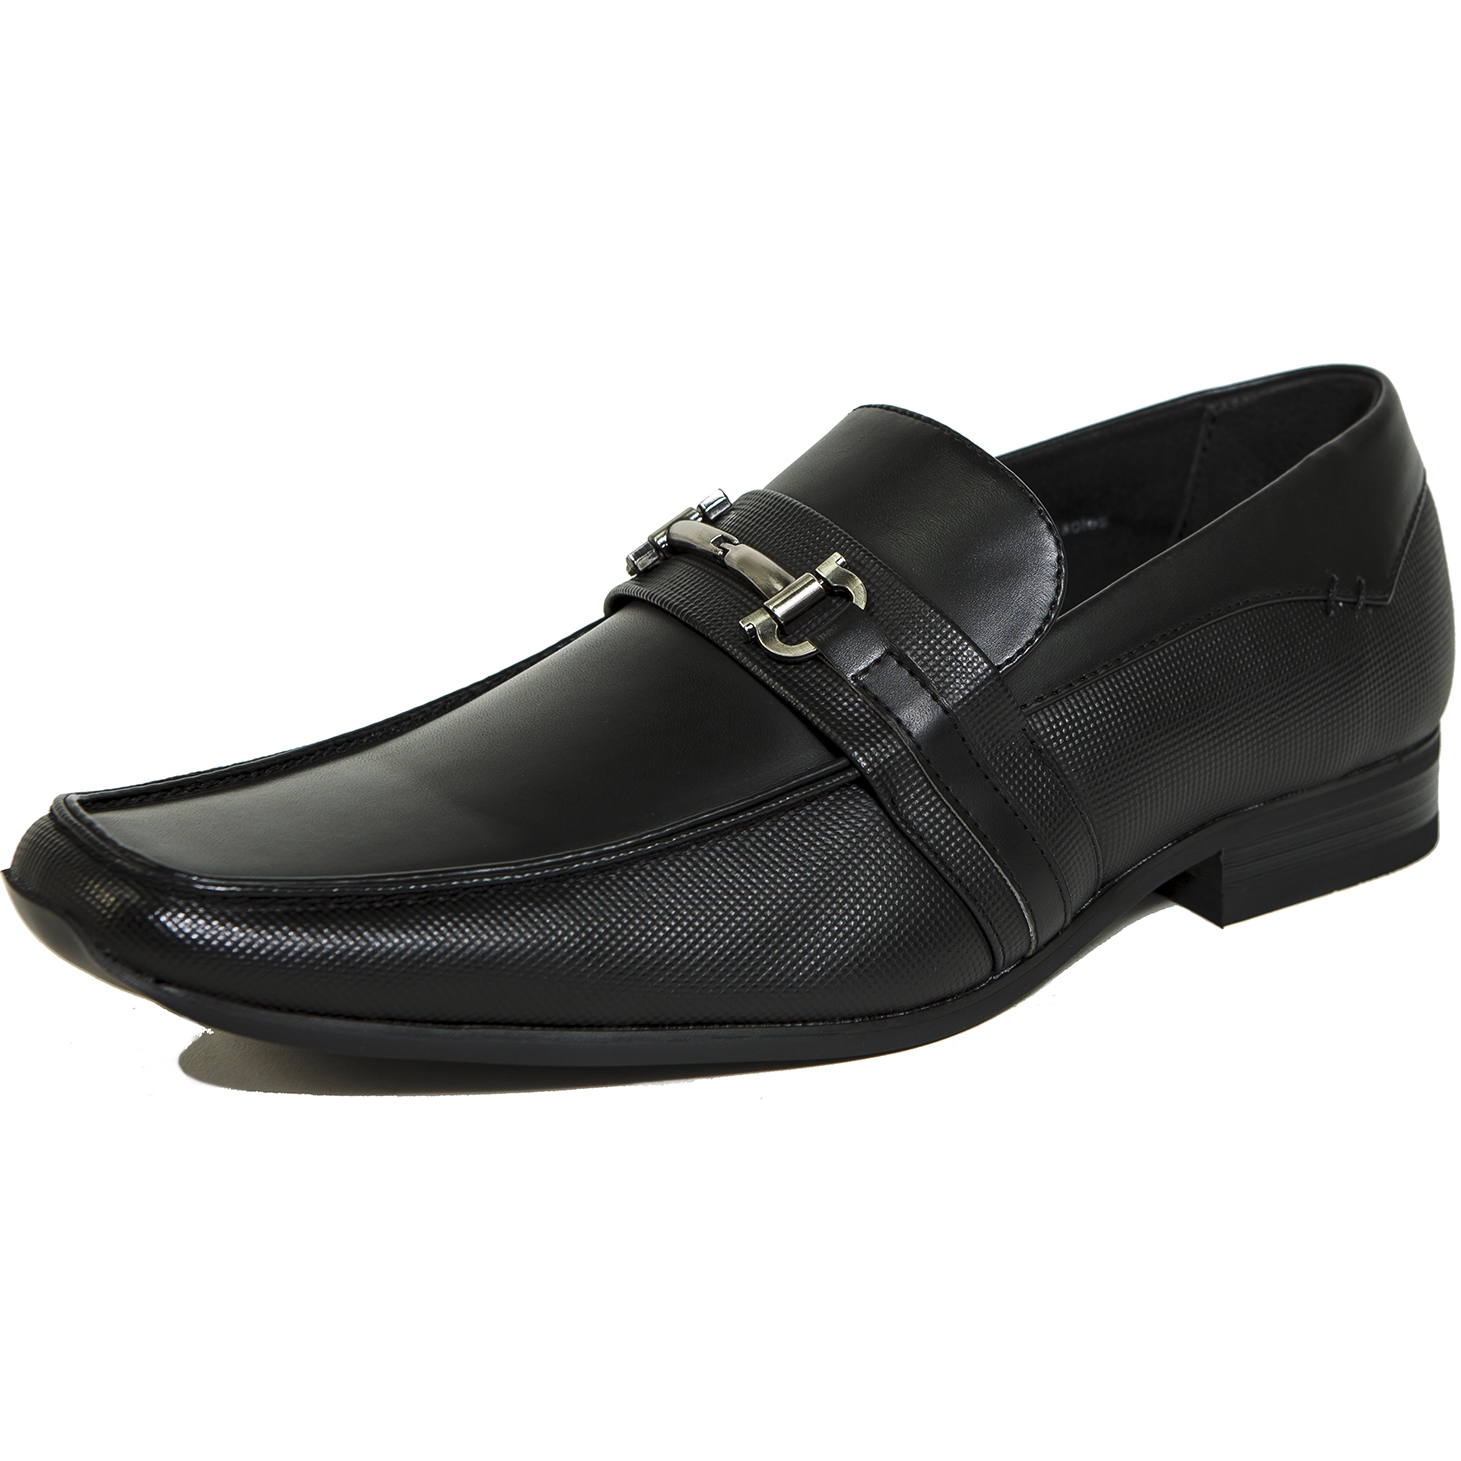 Mens Slip On Dress Shoes With Buckle